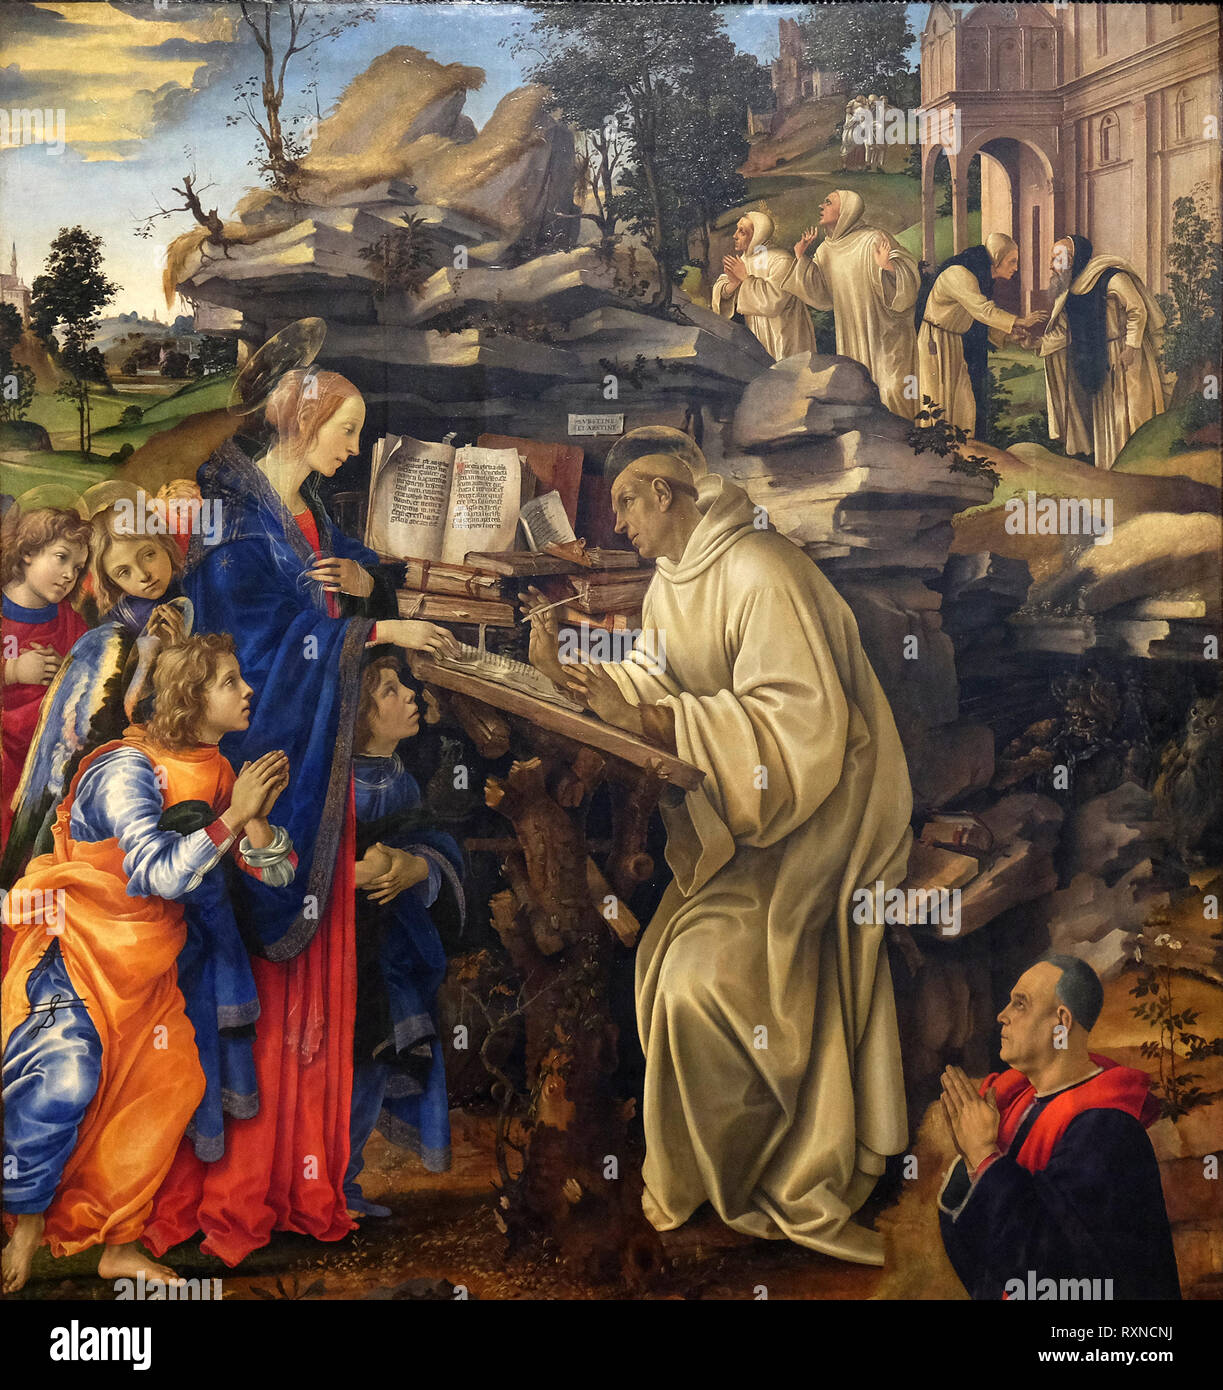 Apparition of the Virgin to Saint Bernard of Clairvaux by Filippino Lippi, Badia Fiorentina church in Florence, Italy Stock Photo